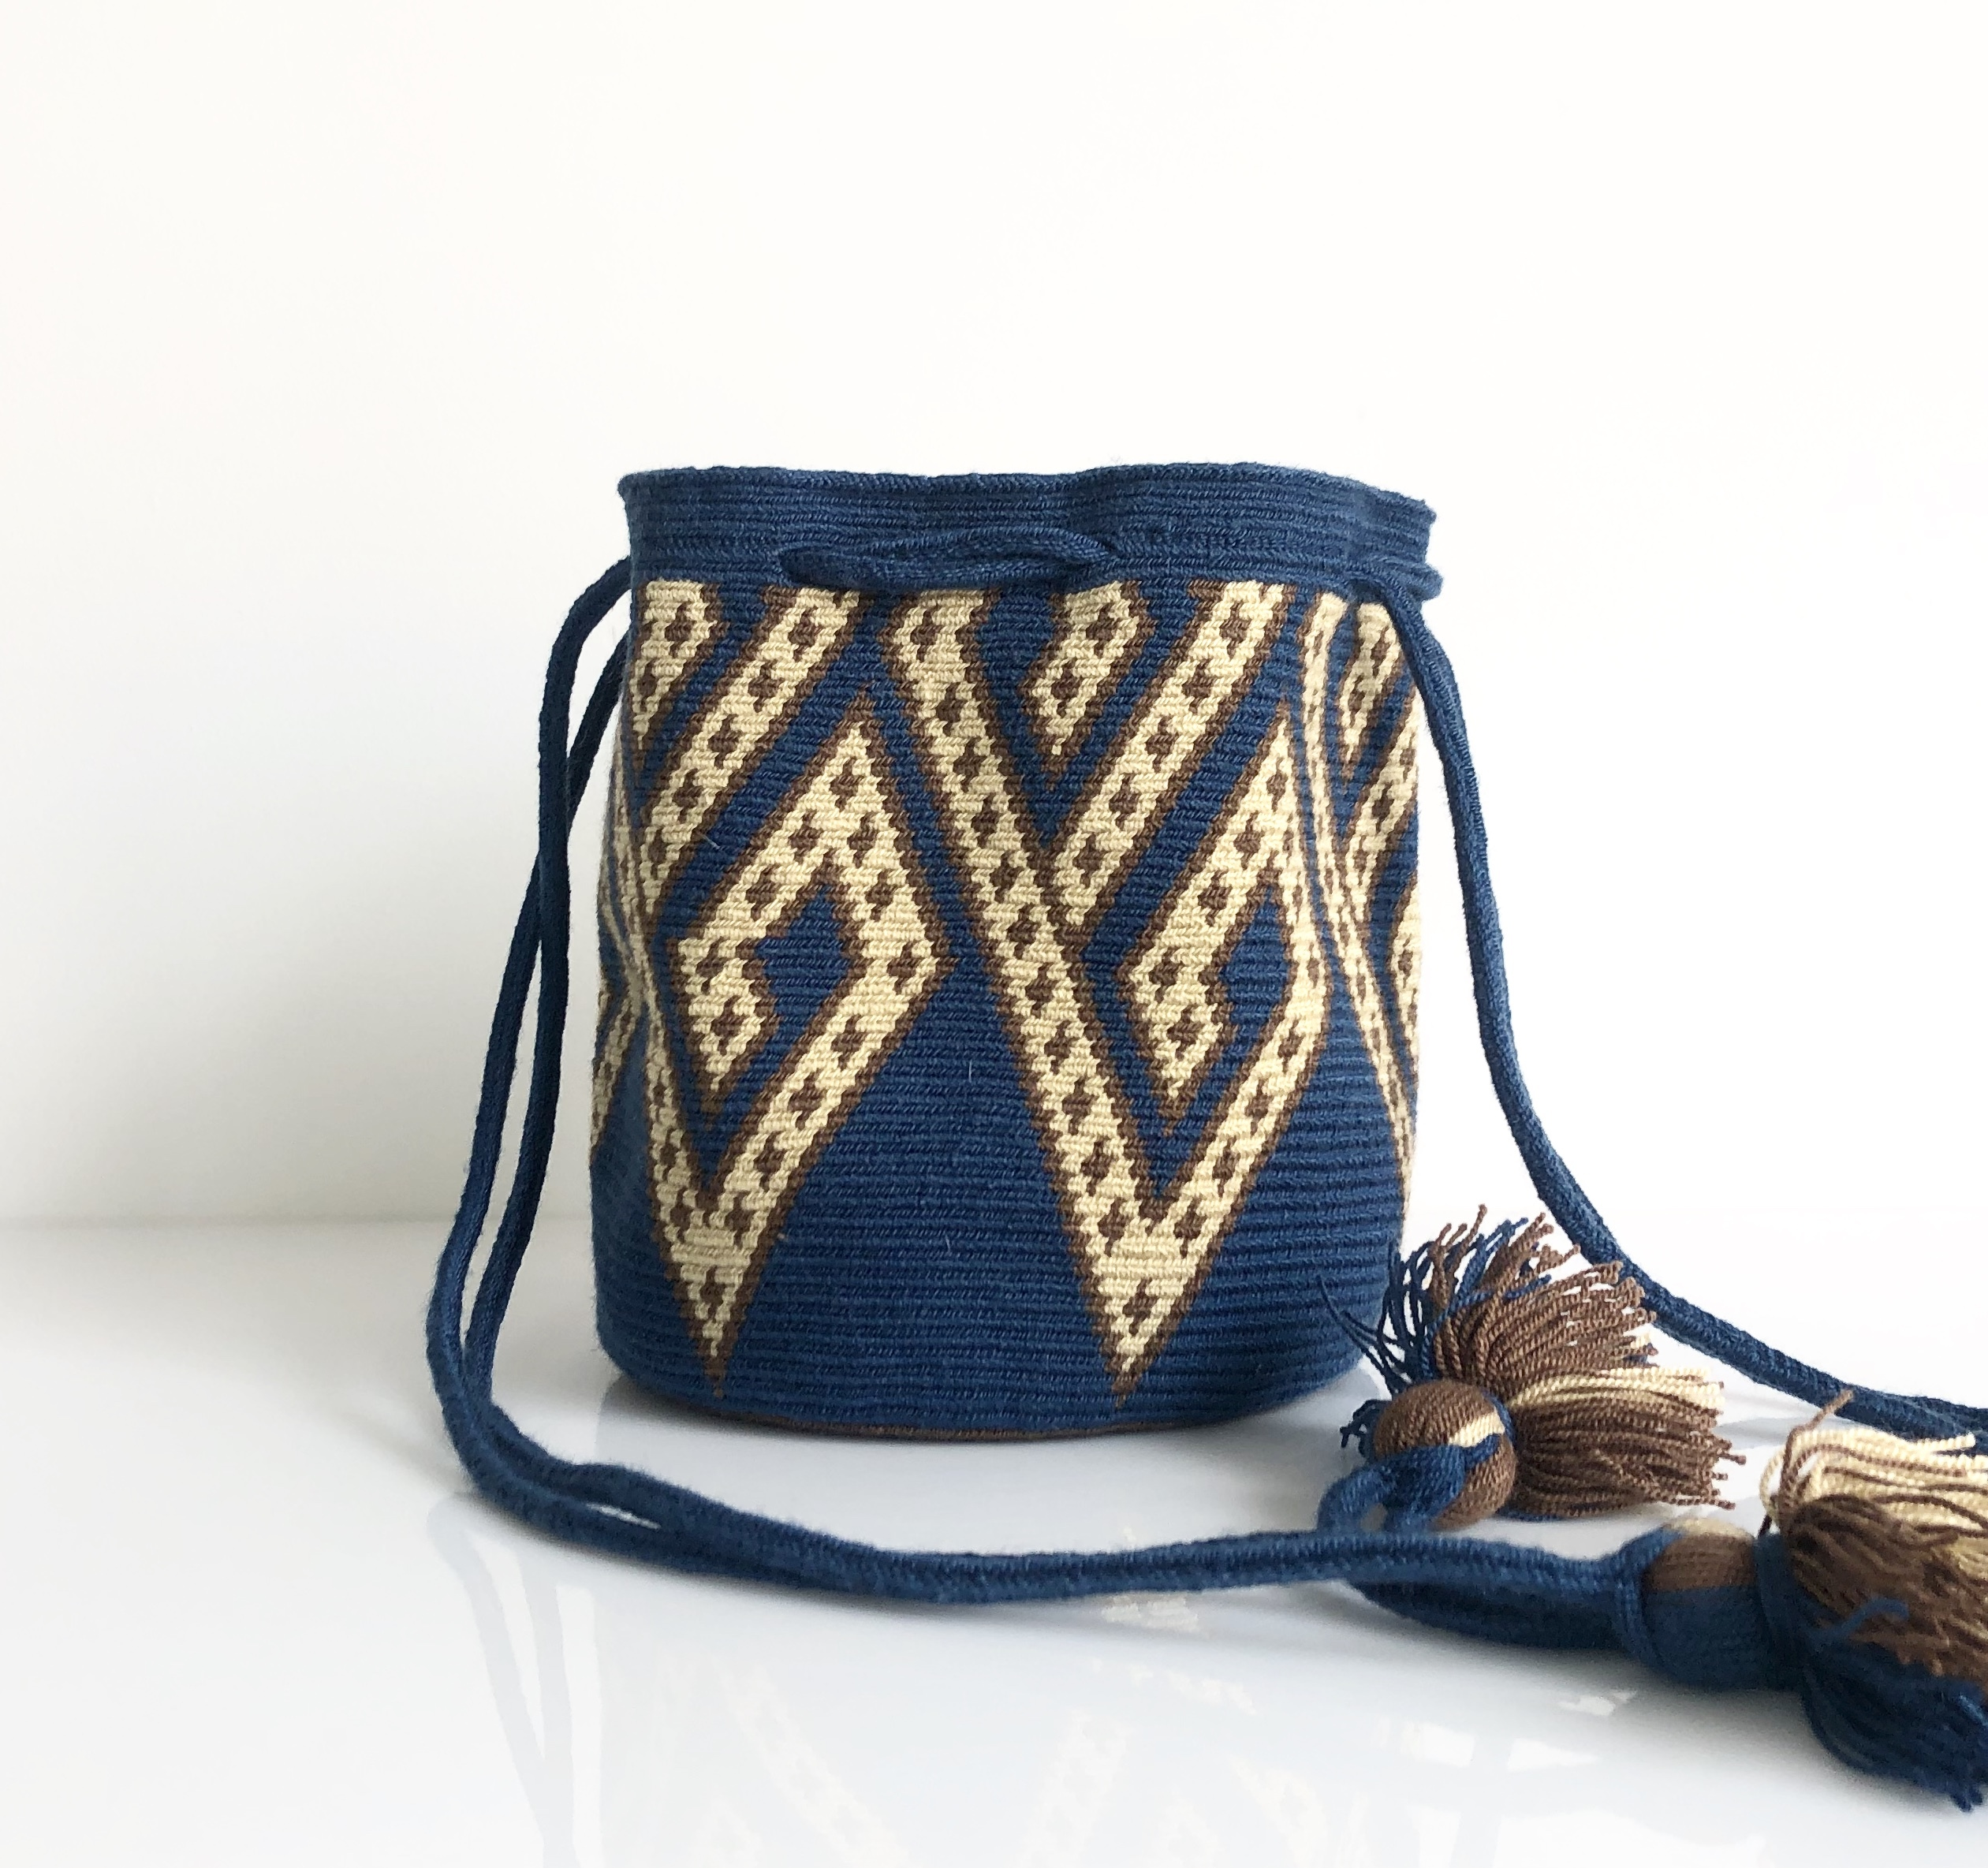 ワユーバッグ(Wayuu bag) Exclusive line Sサイズ Kinchaku